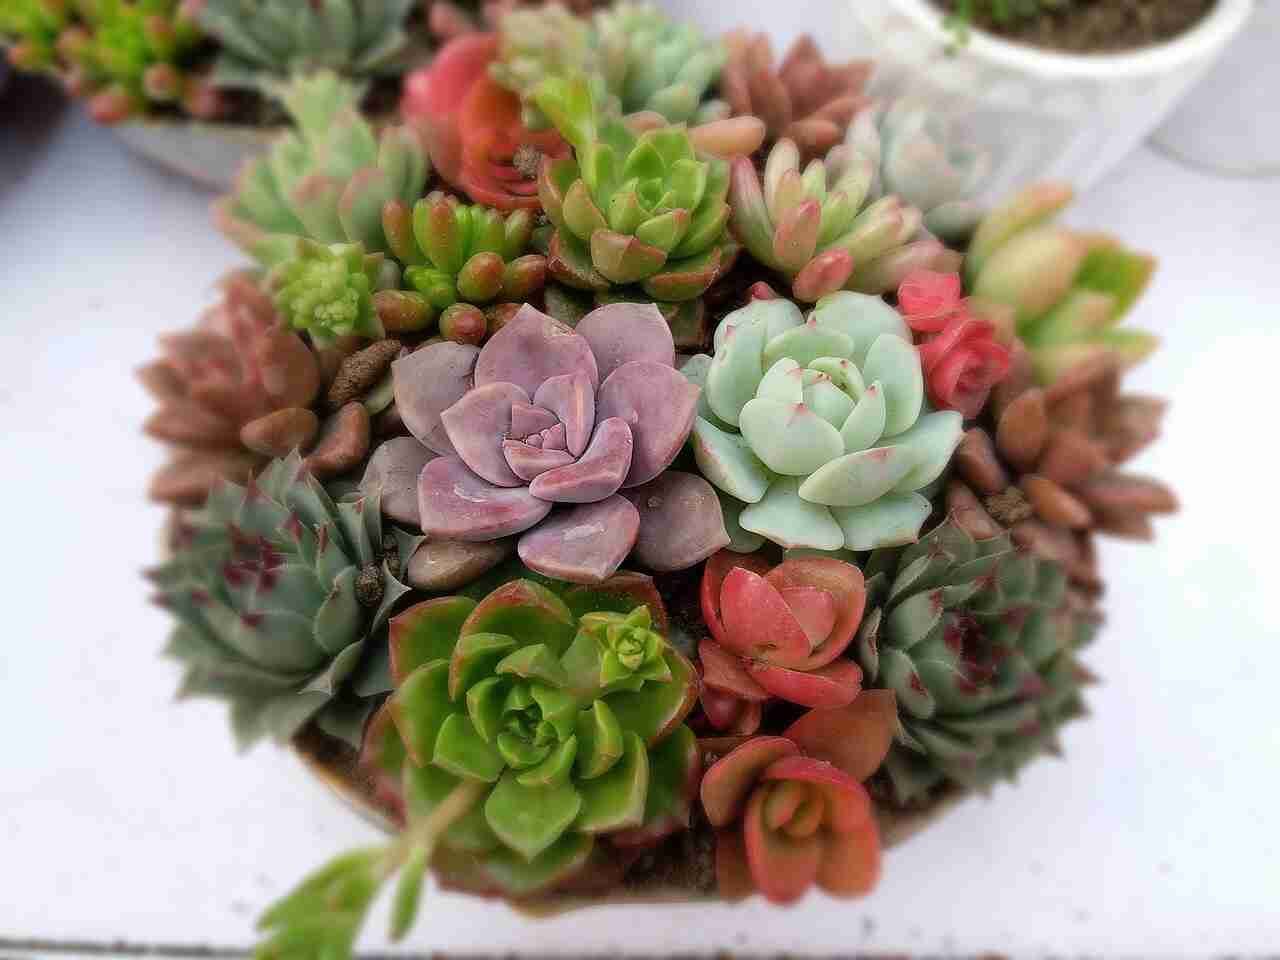 How To Water Succulent Plants Guide With Pictures Succulents Network